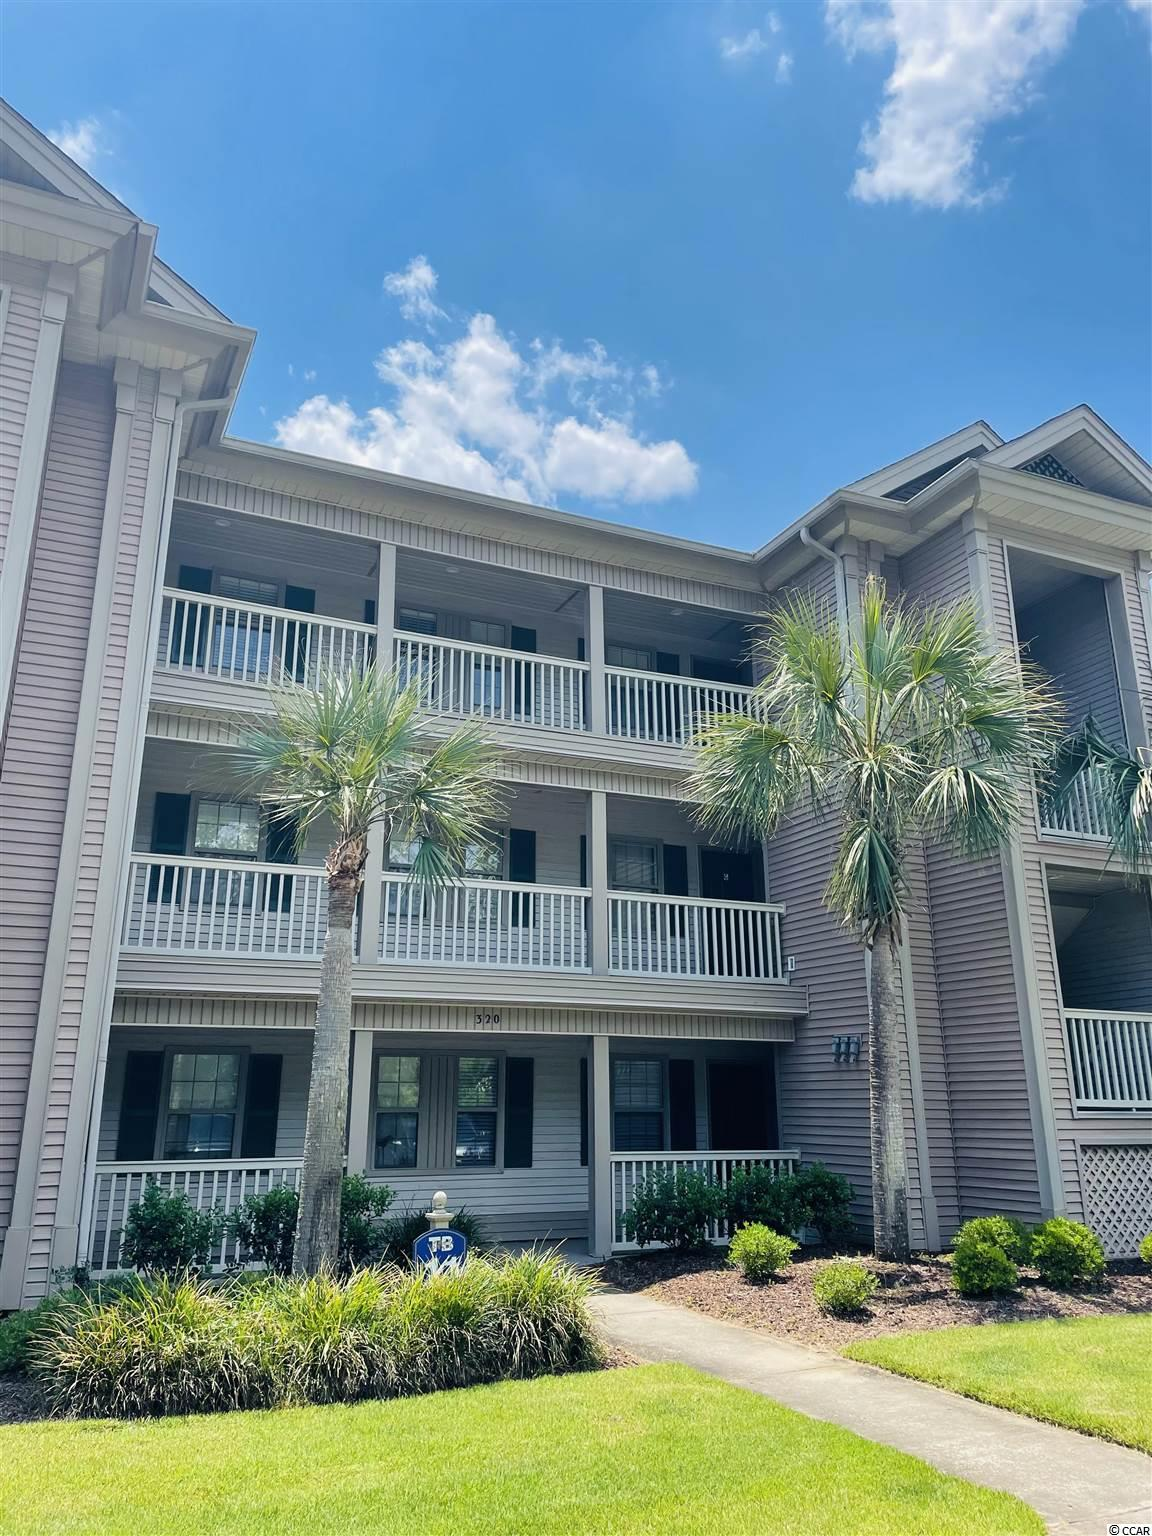 Welcome to the True Blue Neighborhood. This beautiful neighborhood sits right on the True Blue golf course and has lots of area for walking and biking. Less than three miles from Pawleys Island Beach. 2 bed / 2 bath unit on the first floor with a nice screen porch that has beautiful views of the golf course. True Blue offers great amenities such as a huge pool and tennis courts. This condo must be seen in person to appreciate and will not last long.